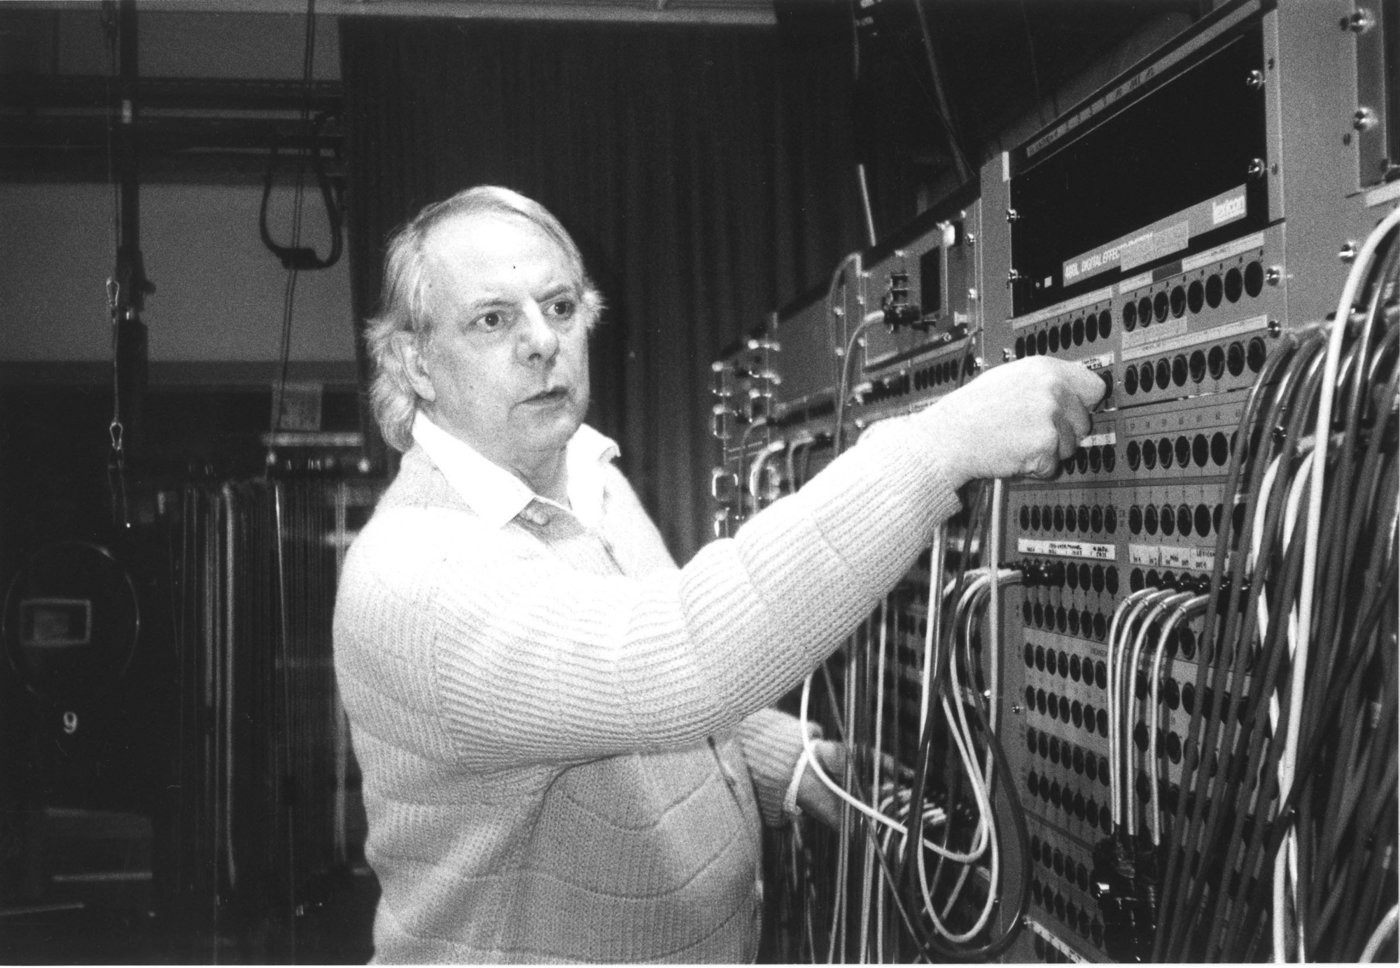 Medium stockhausen 1994 wdr